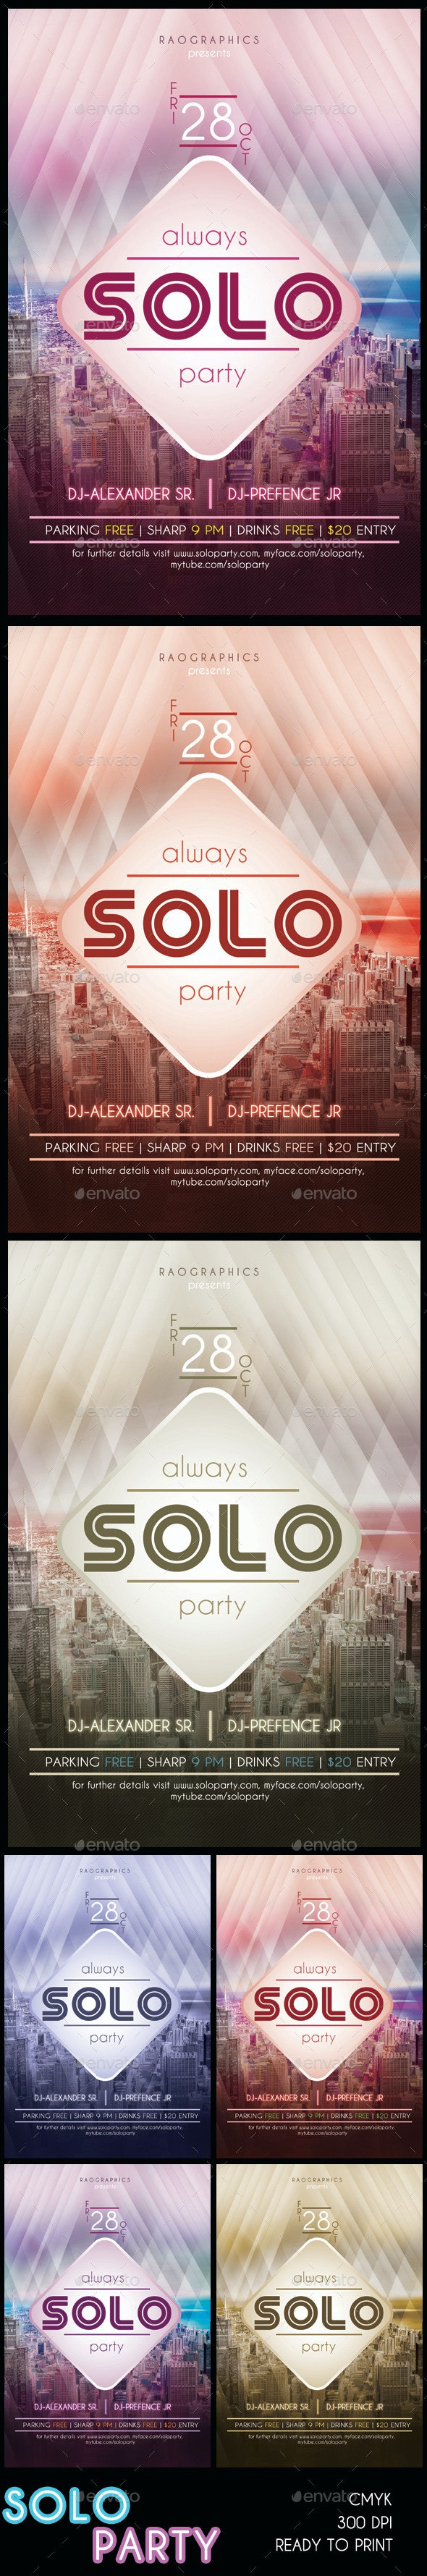 Solo City Party Flyer - Miscellaneous Events